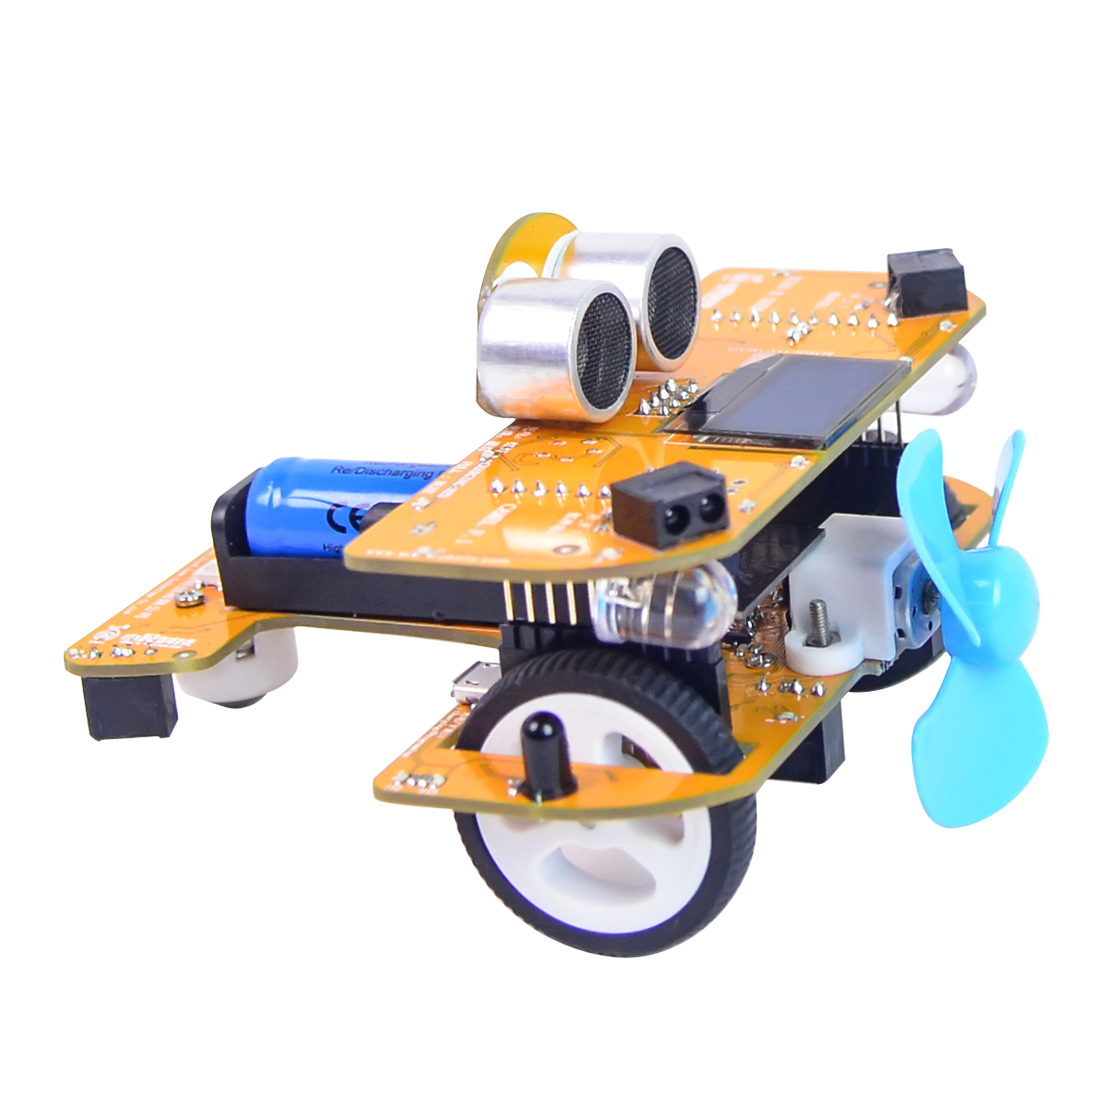 Programmable Smart Car Steam Educational DIY Plane With Graphical Processing Scratch Mixly For Arduino UNO R3 Gift For Over 5